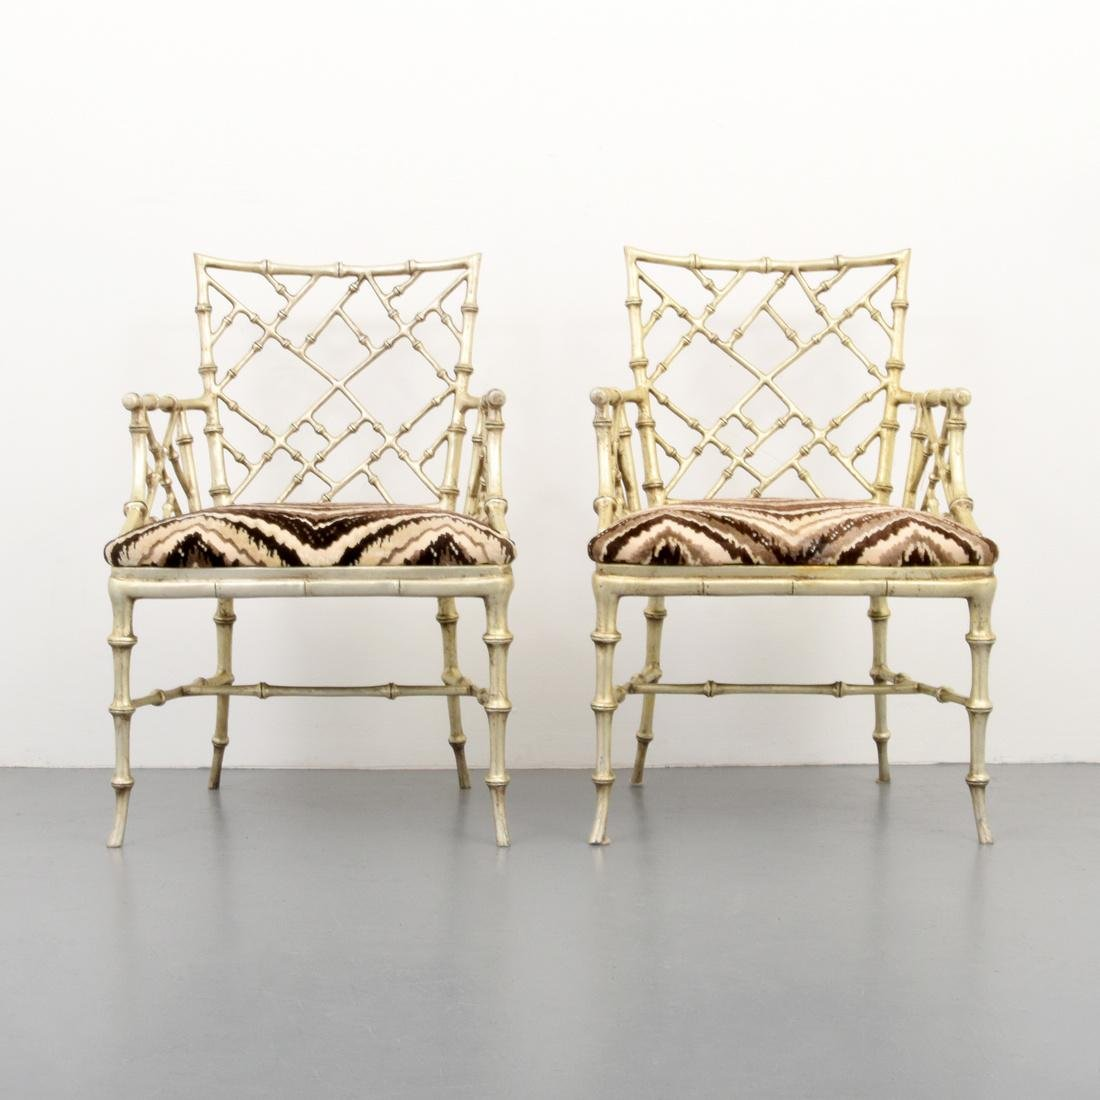 Pair of Phyllis Morris Originals Faux Bamboo Arm Chairs - 2